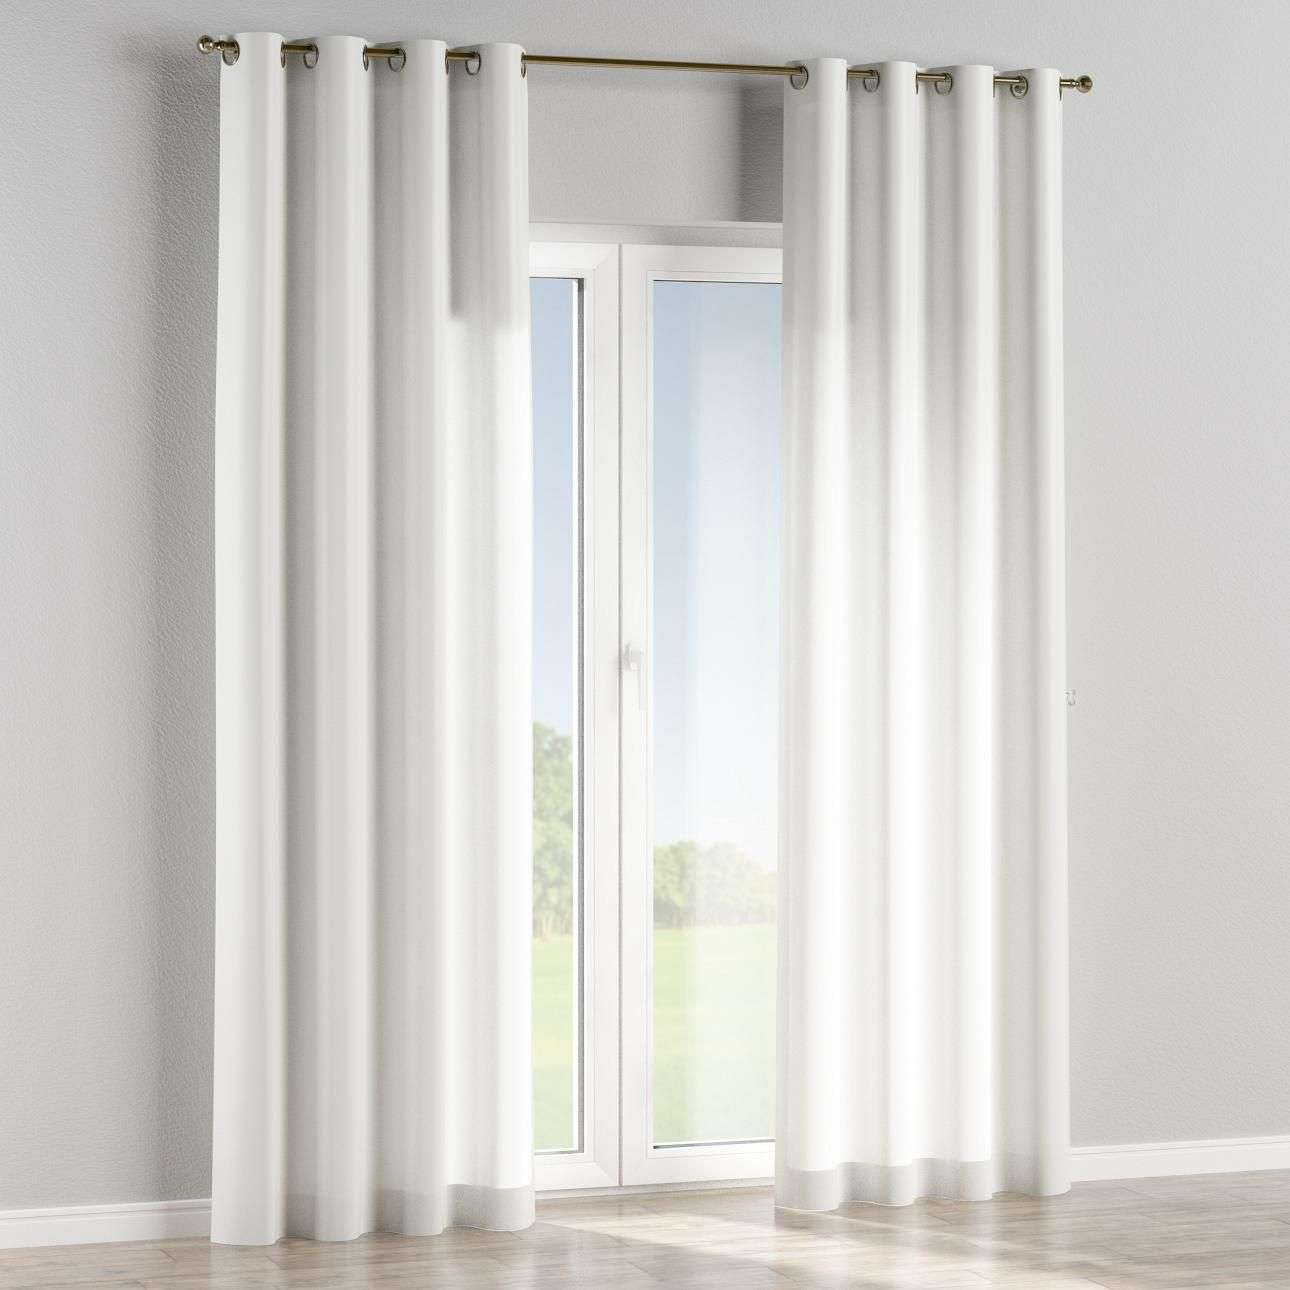 Eyelet curtains in collection Cardiff, fabric: 136-30